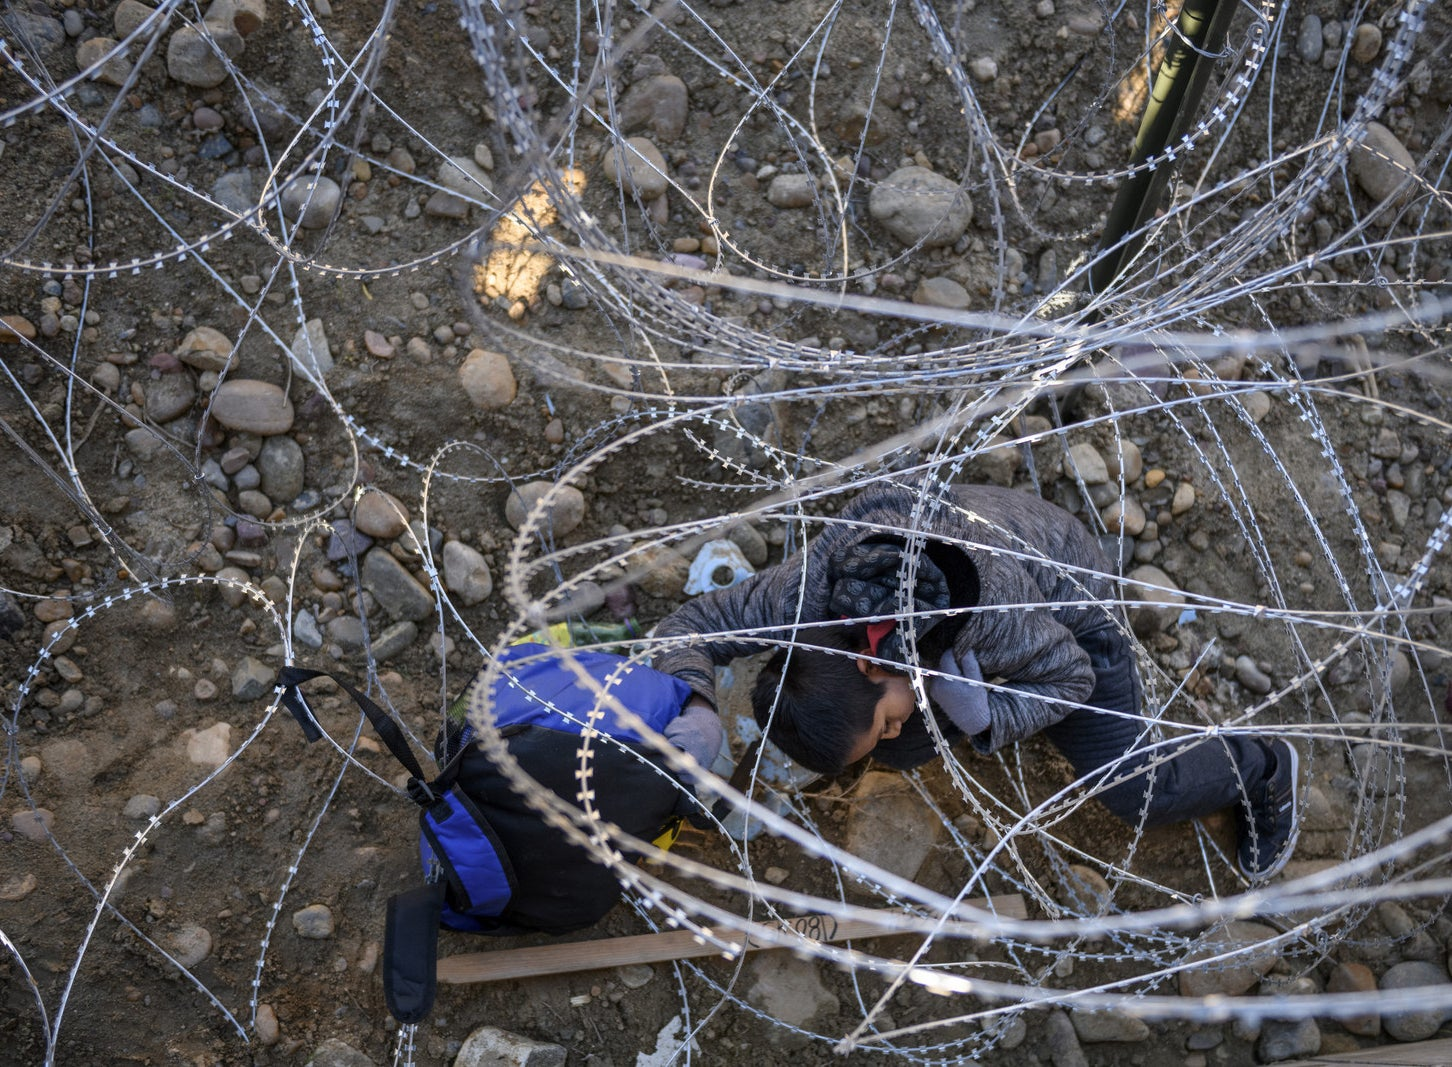 Kevin Andres, a Mexican migrant child from Oaxaca, crawls to retrieve his backpack from barbed wire after jumping the border fence to get into the US from Tijuana, Mexico, Dec. 28.